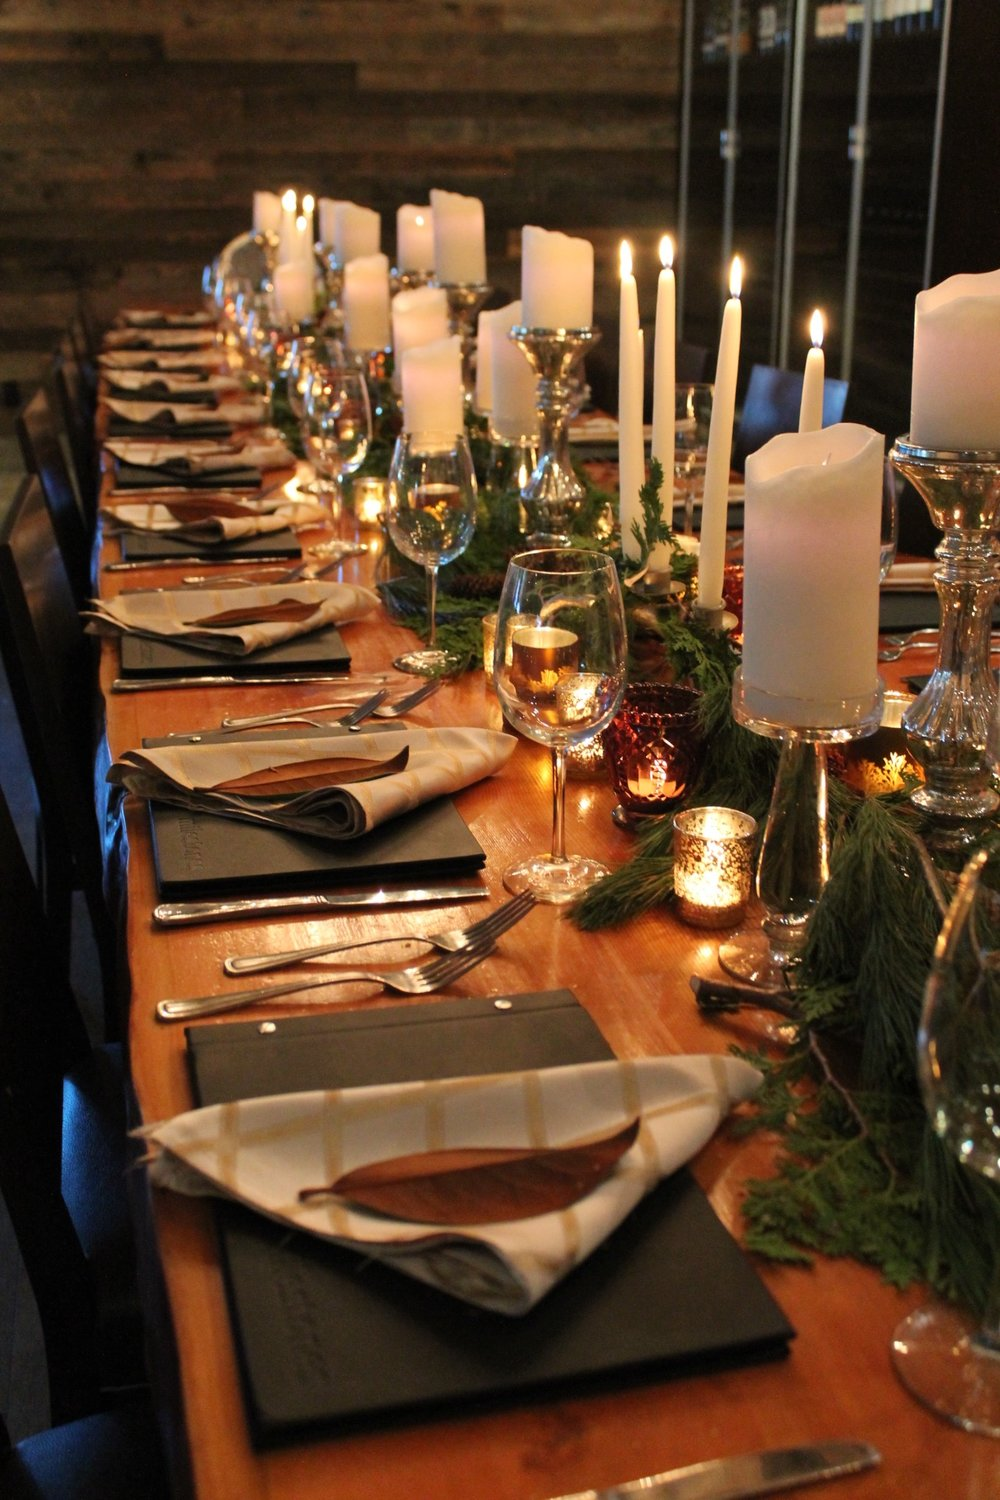 Holiday Table Settings for a private event, A touch of masculinity and a holiday vibe, Magnolia leaves and black menus. Sharp.